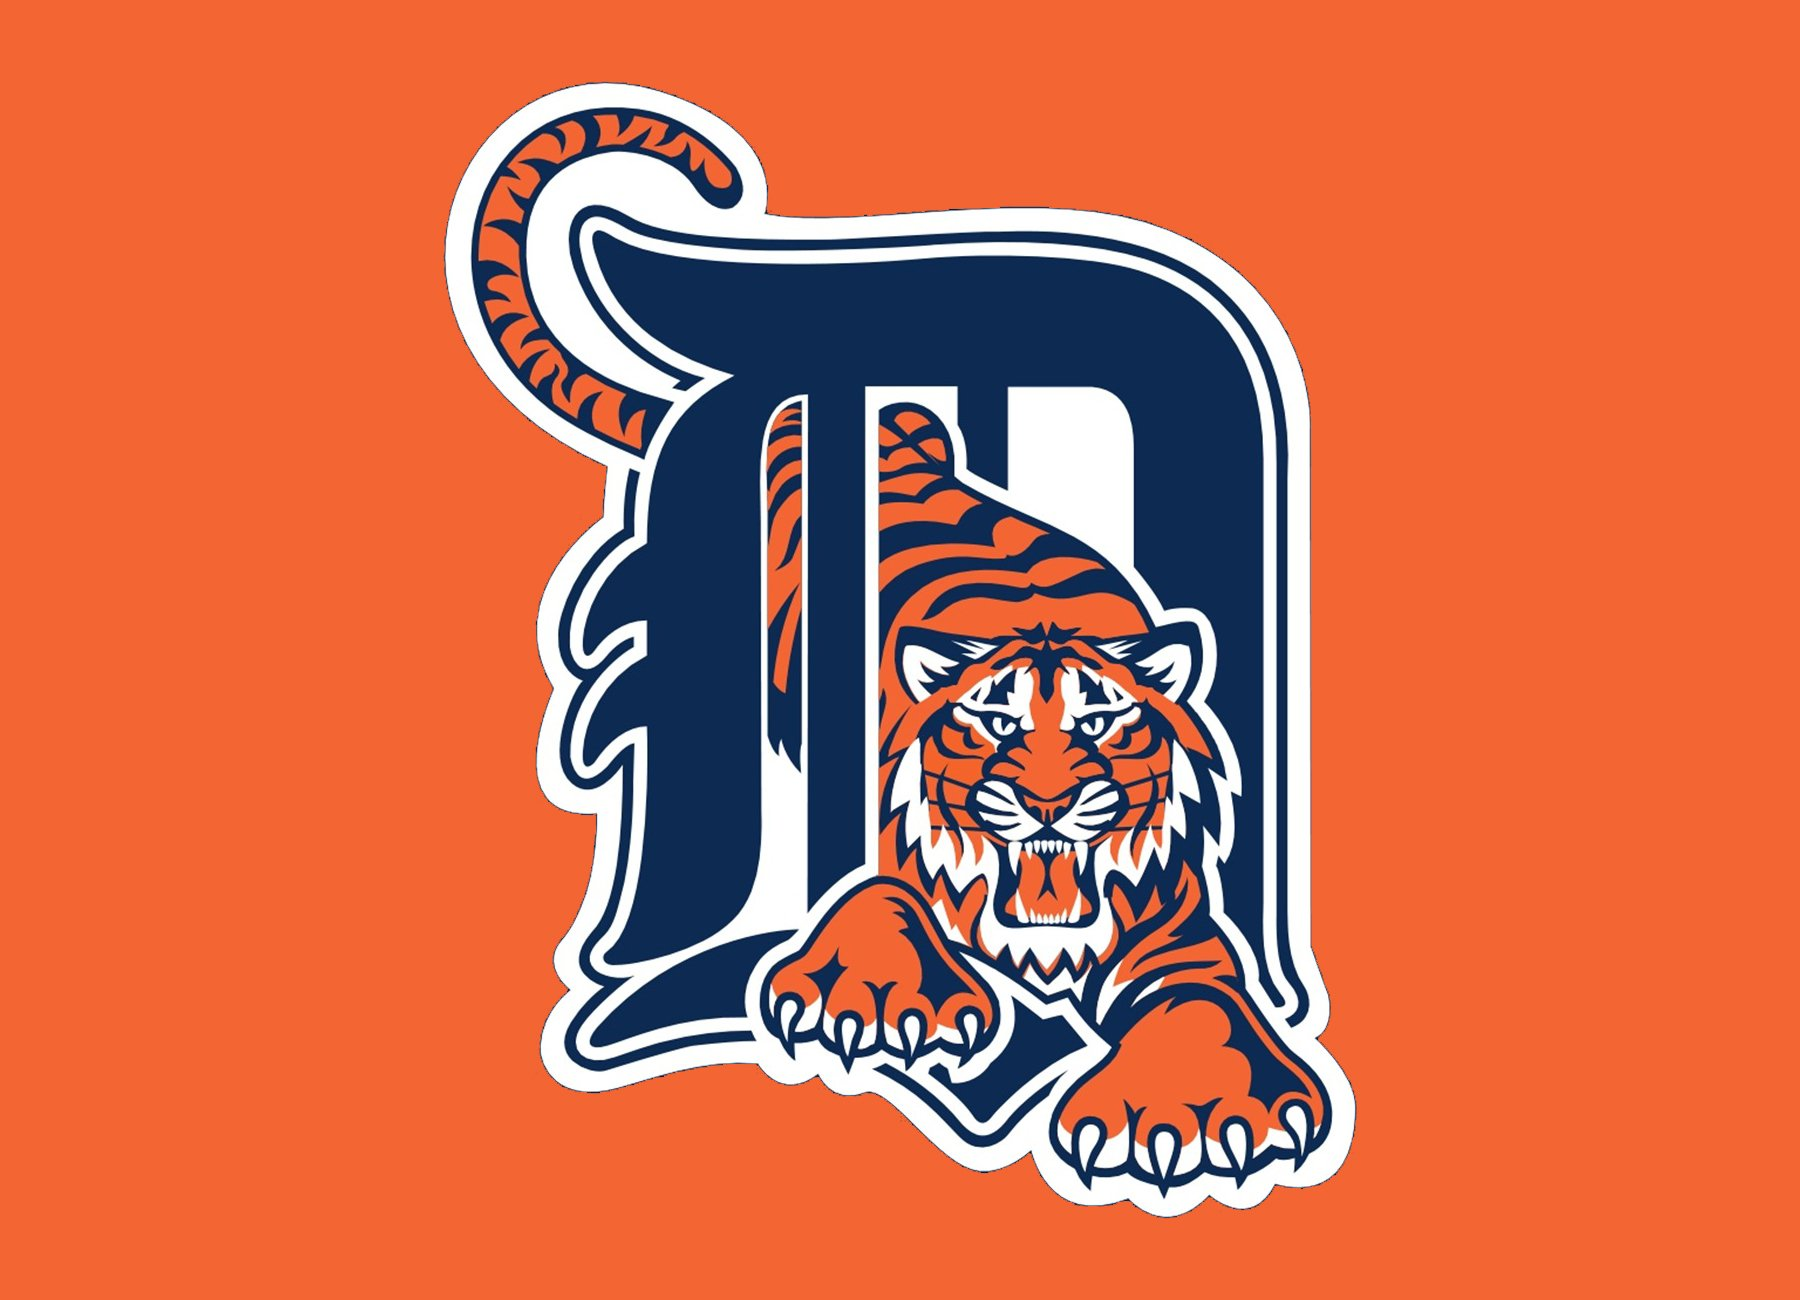 Detroit tigers logo detroit tigers symbol meaning history and color logo detroit tigers biocorpaavc